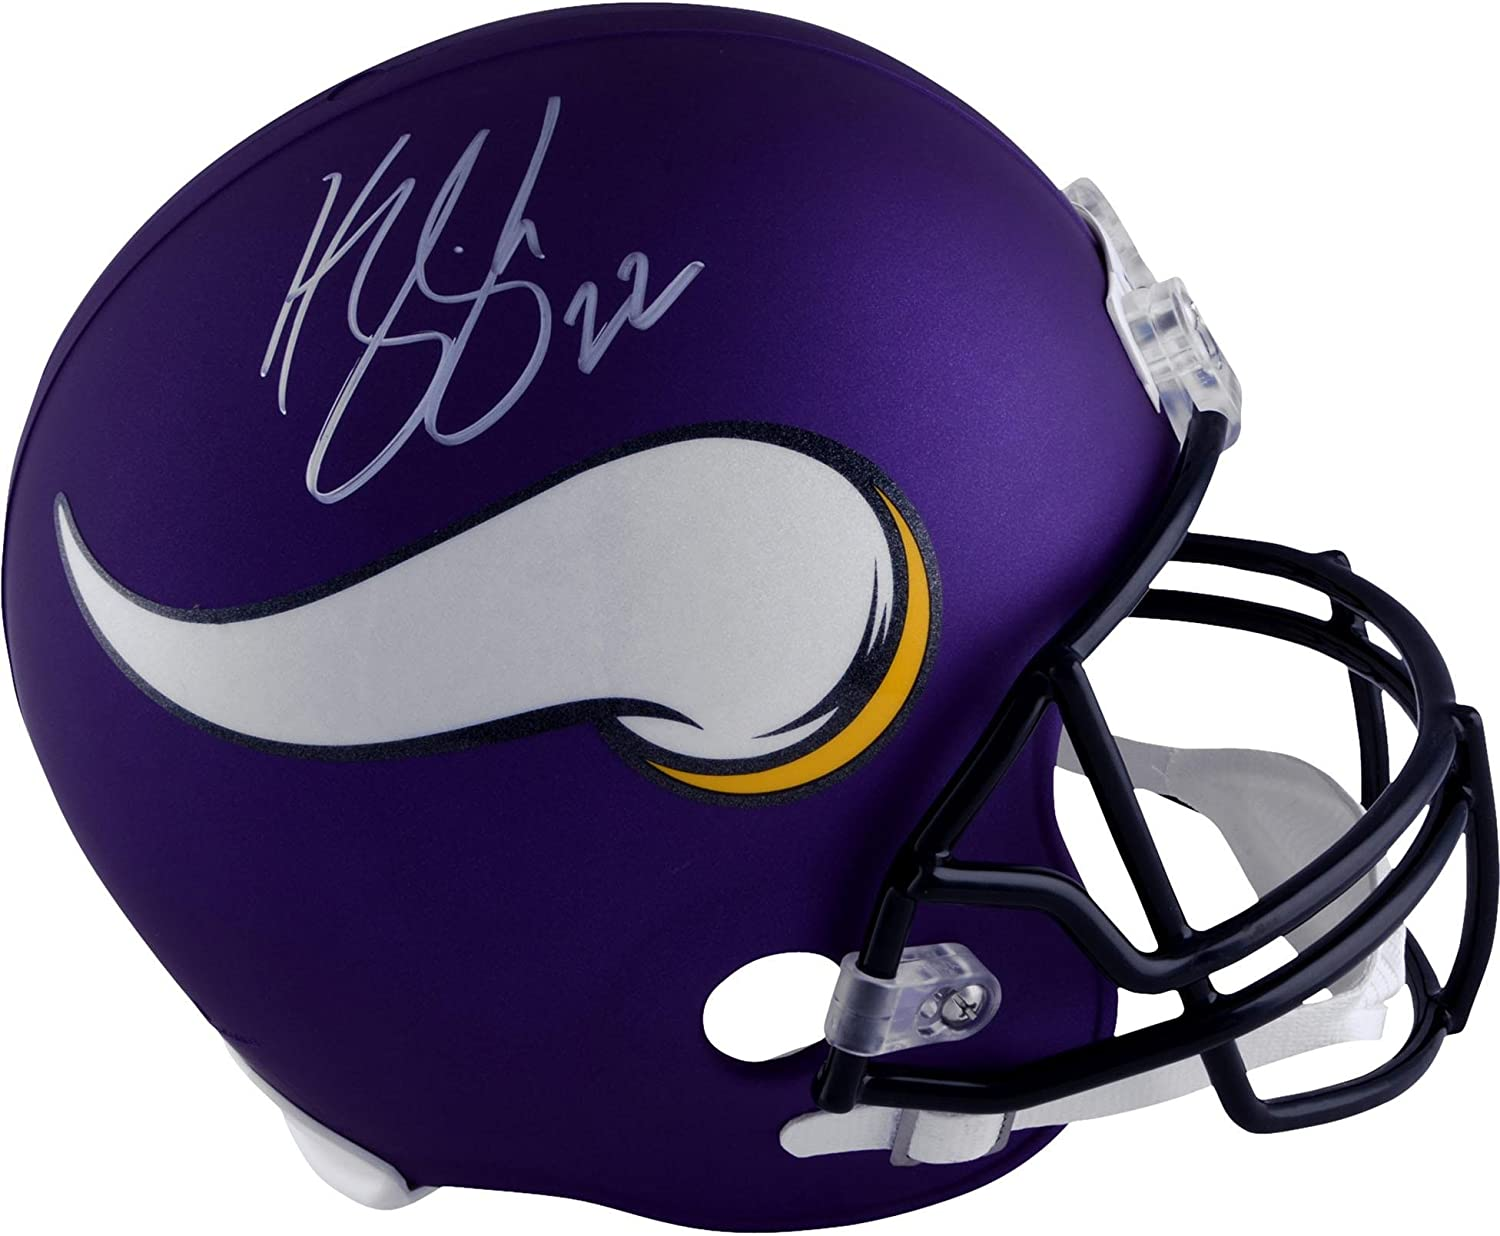 Harrison Smith Minnesota Vikings Autographed Riddell Replica Helmet Autographed NFL Helmets Fanatics Authentic Certified